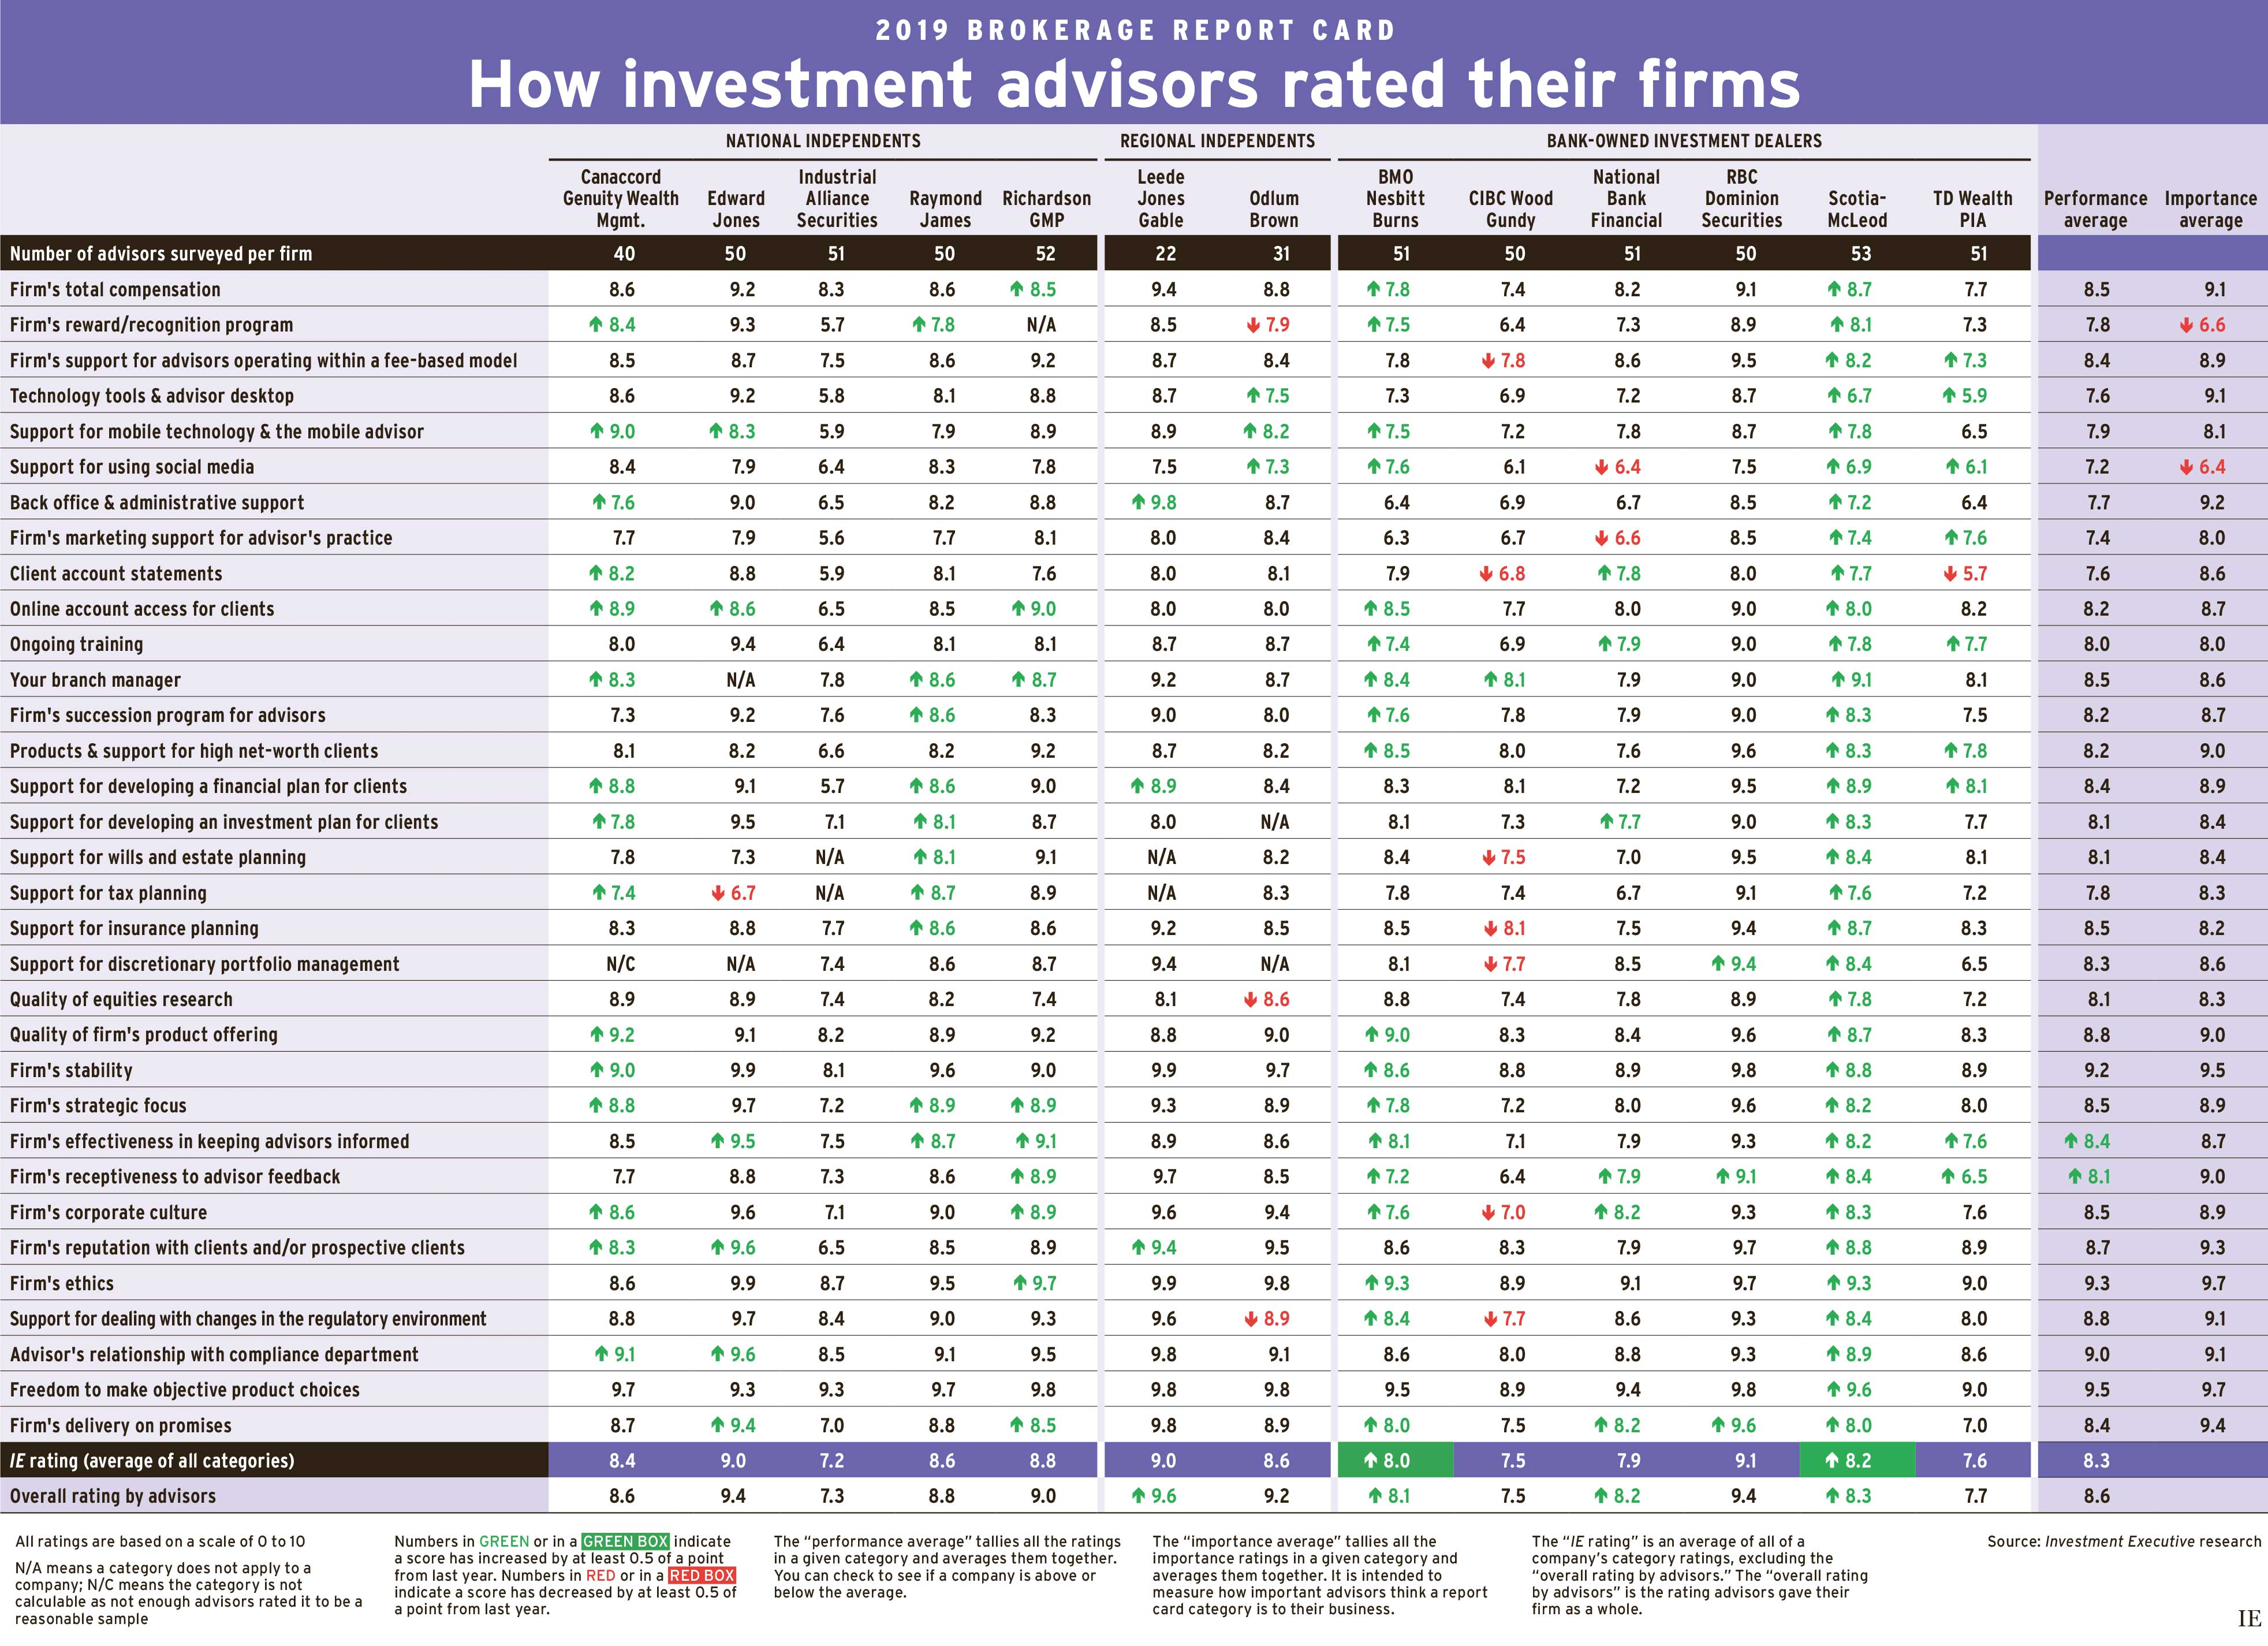 Table: How investment advisors rated their firms